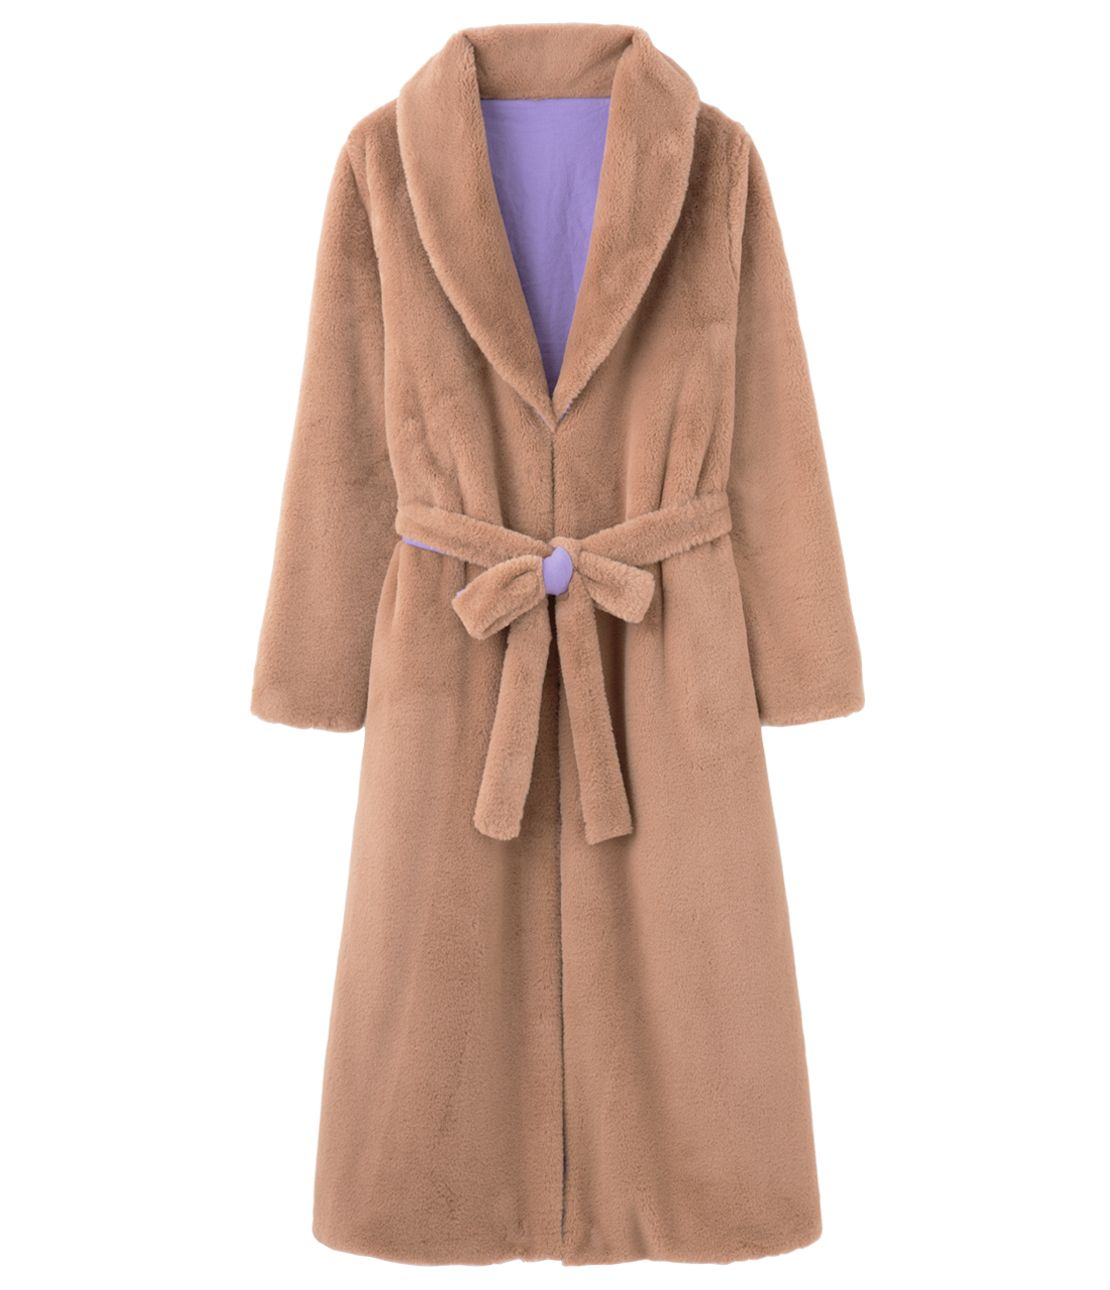 Reversible eco fur coat gown